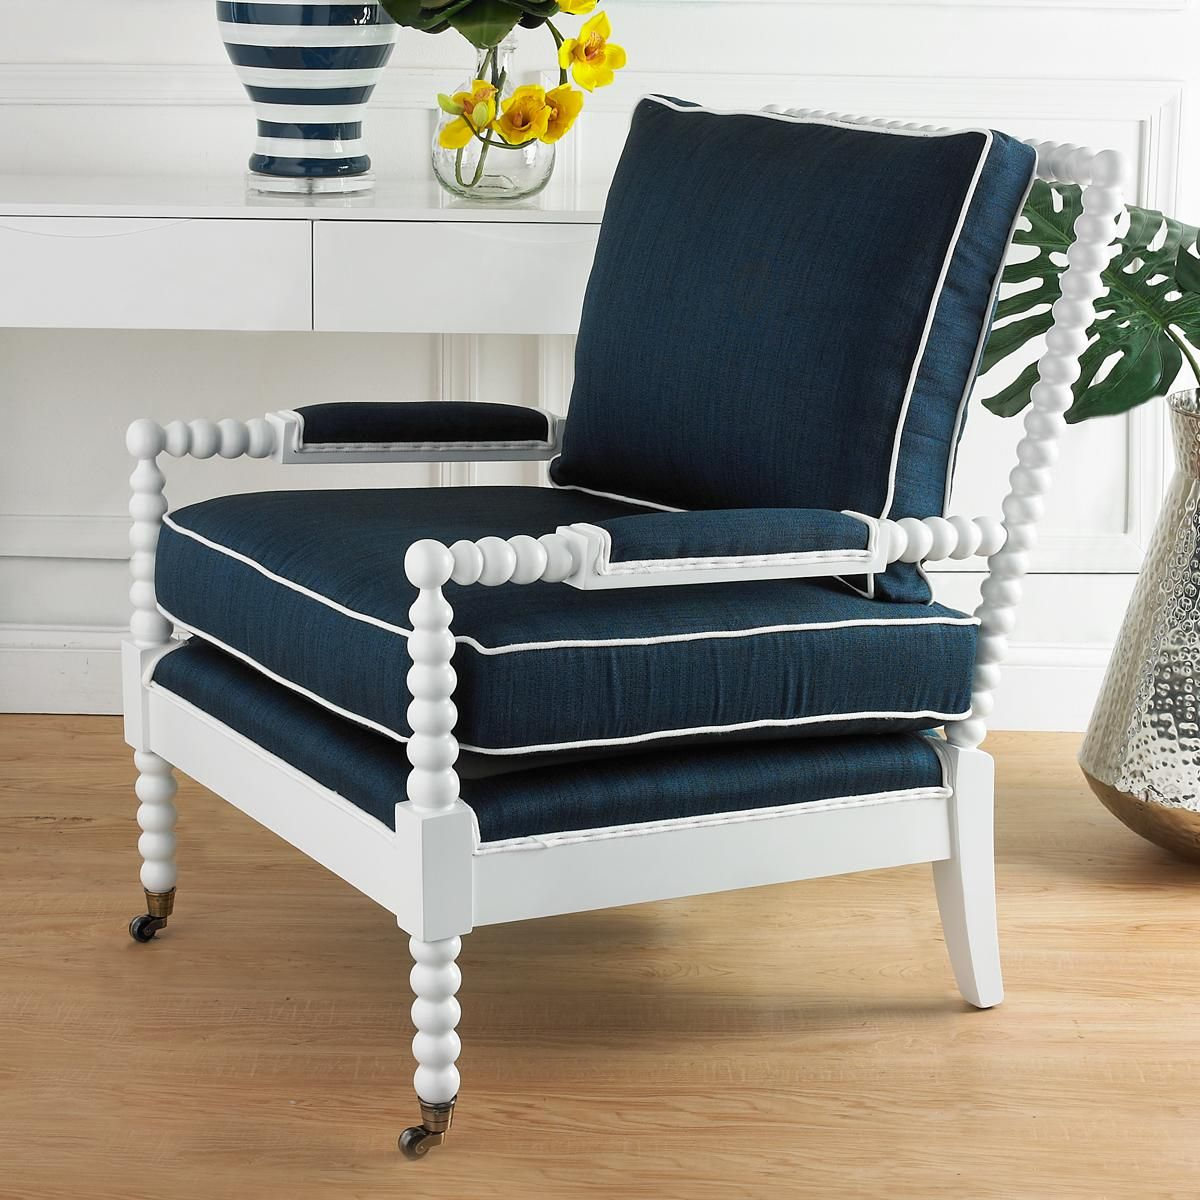 Wooden Spool Accent Chair   Feel'n the blues   Pinterest ...